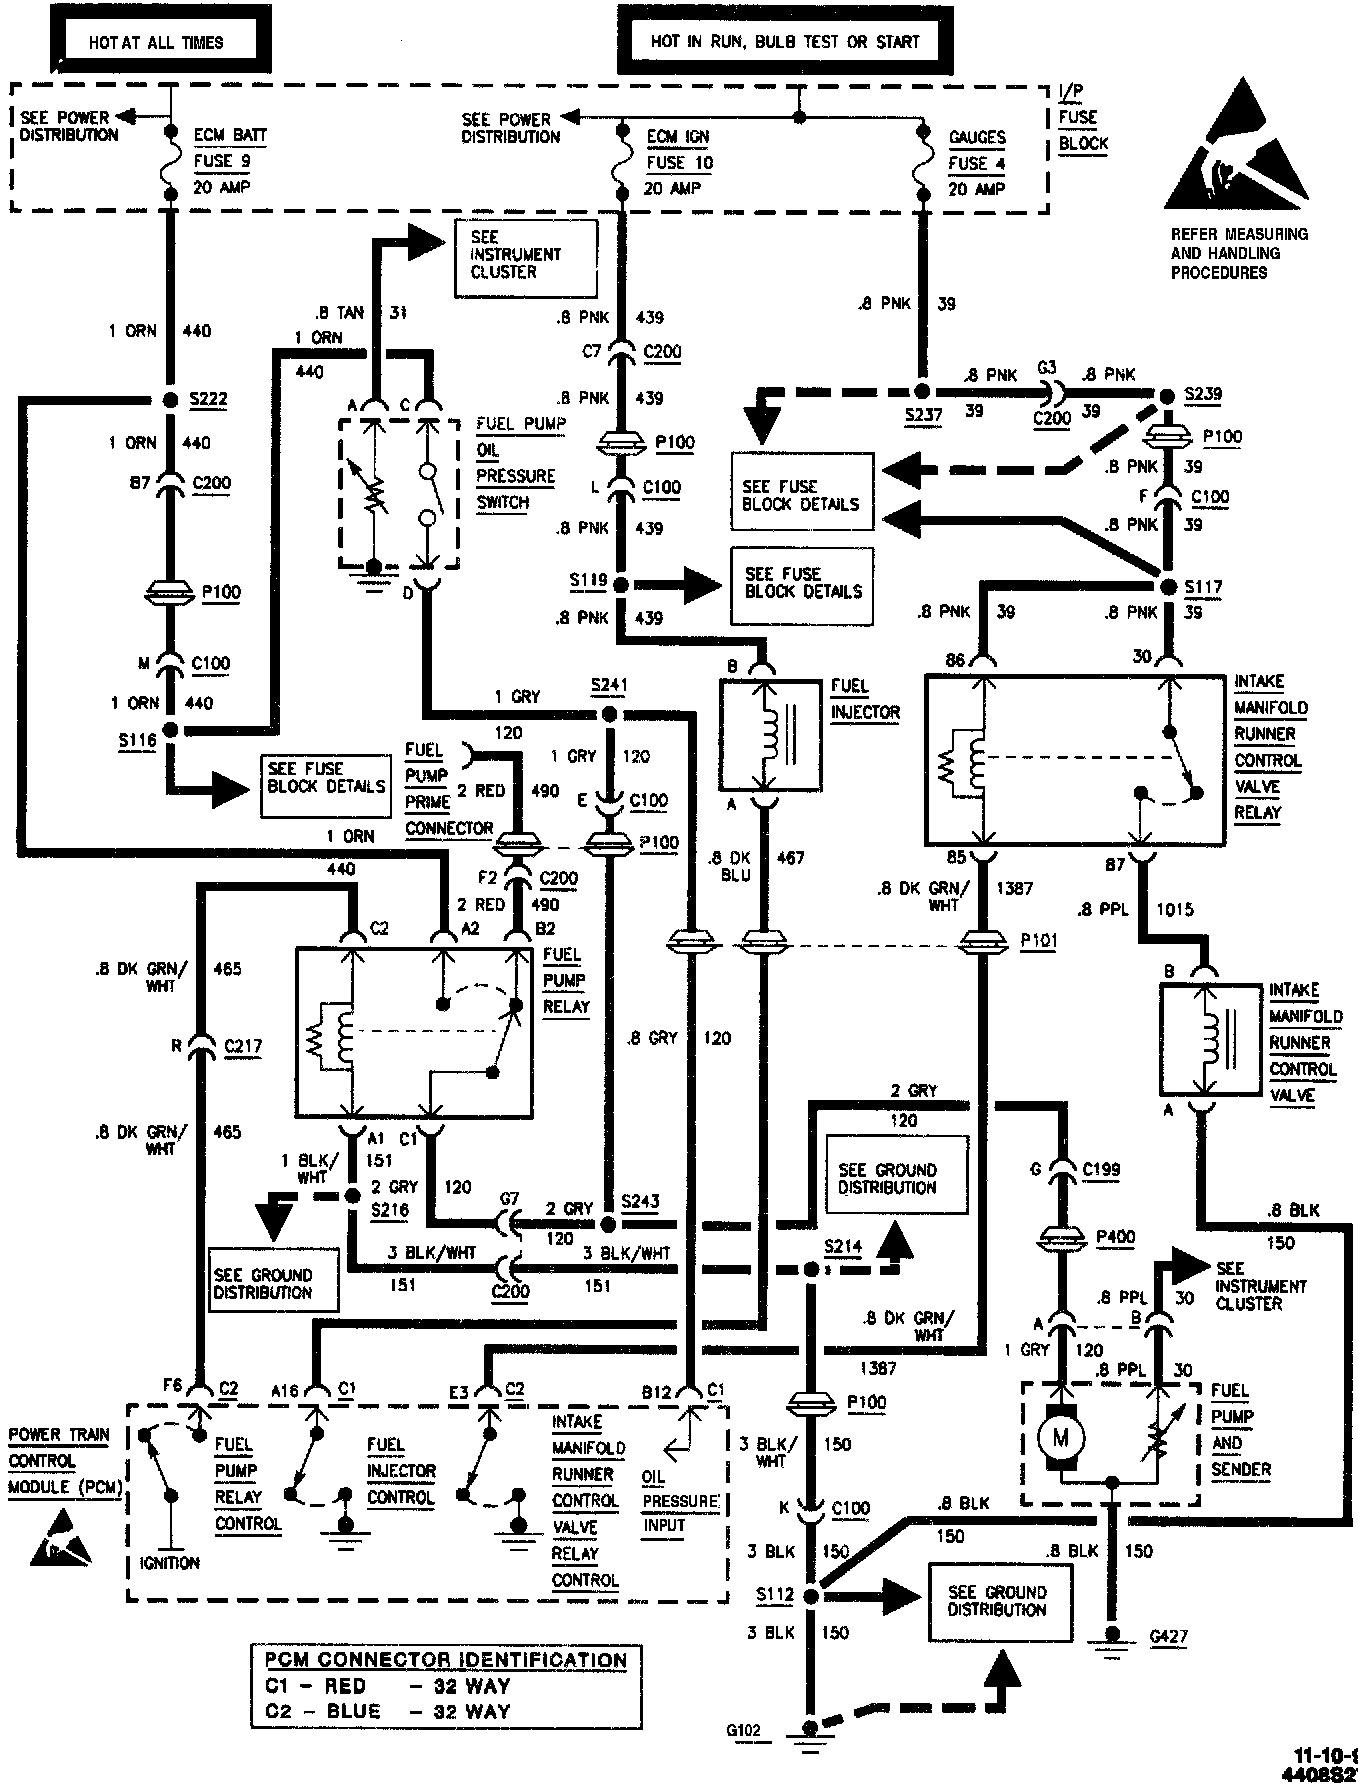 1991 Chevy S10 Wiring Diagram Simple Today 91 Chevrolet Caprice Blogs Wiper Motor